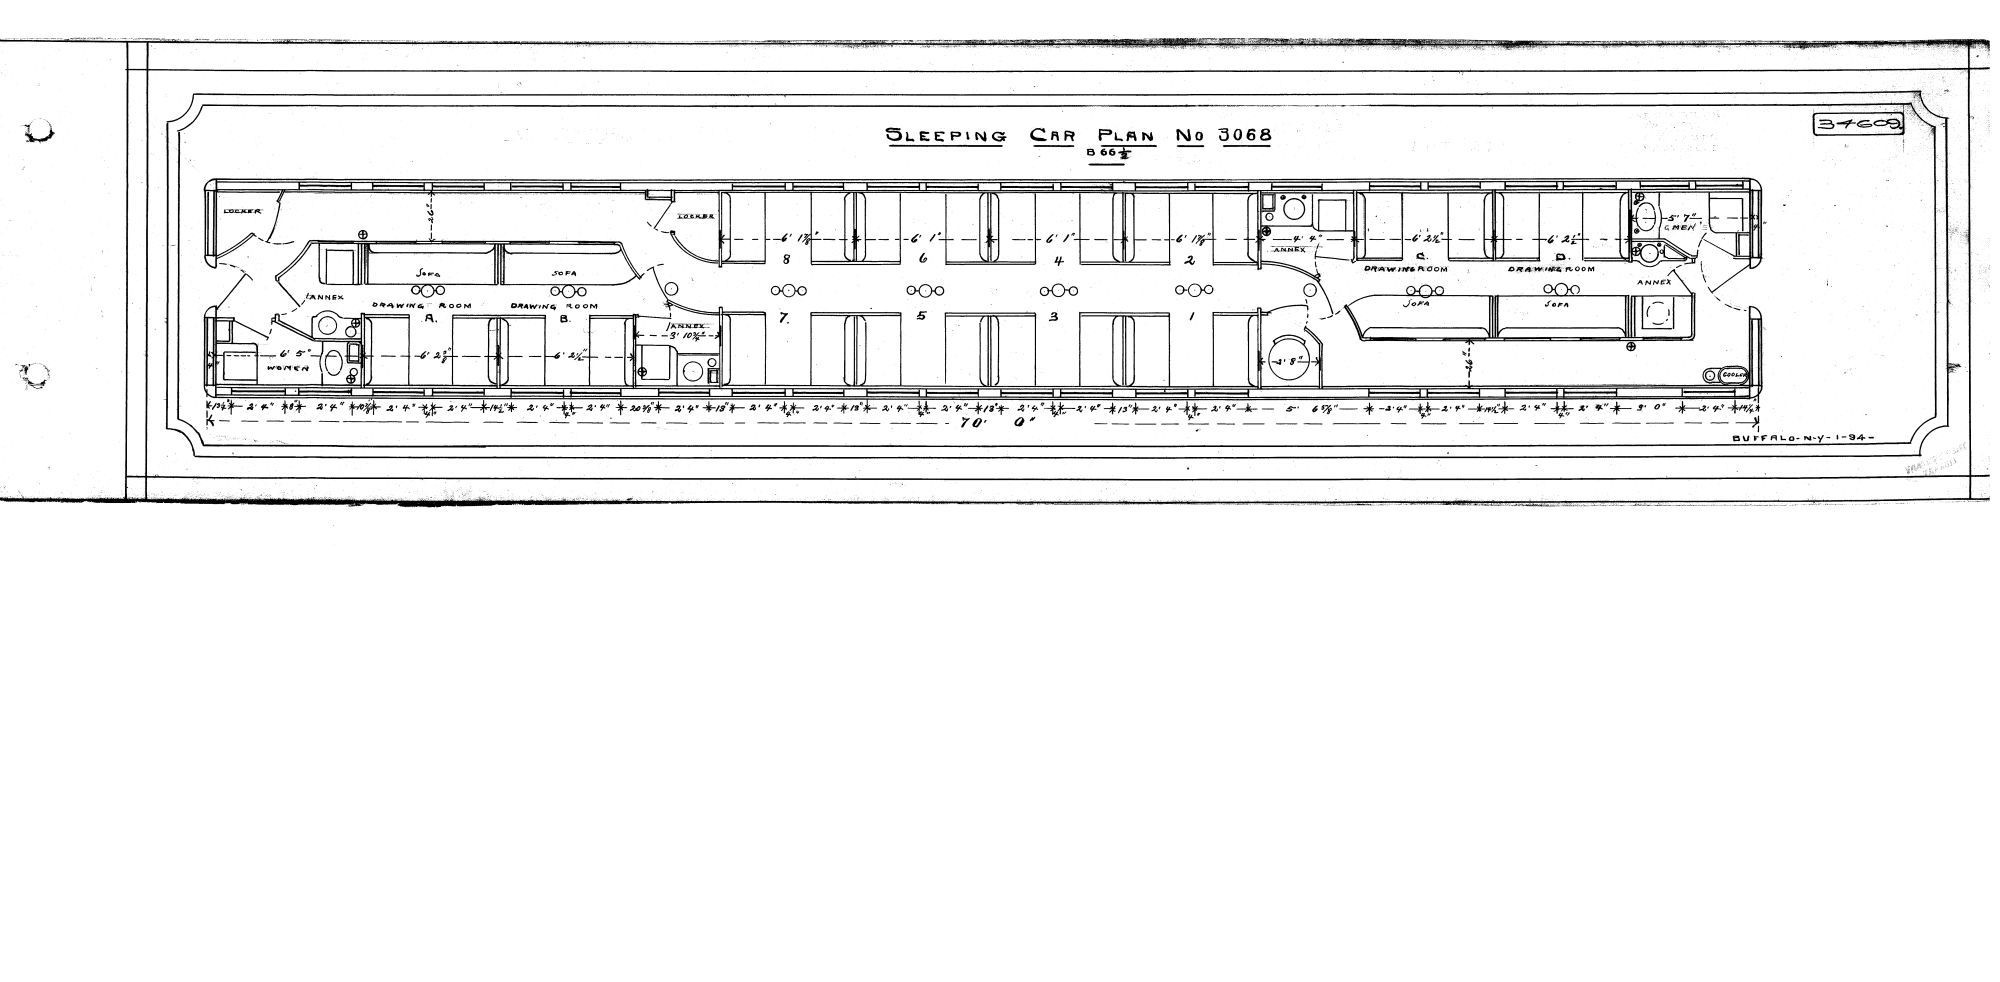 Amtrak Sleeping Car Diagrams